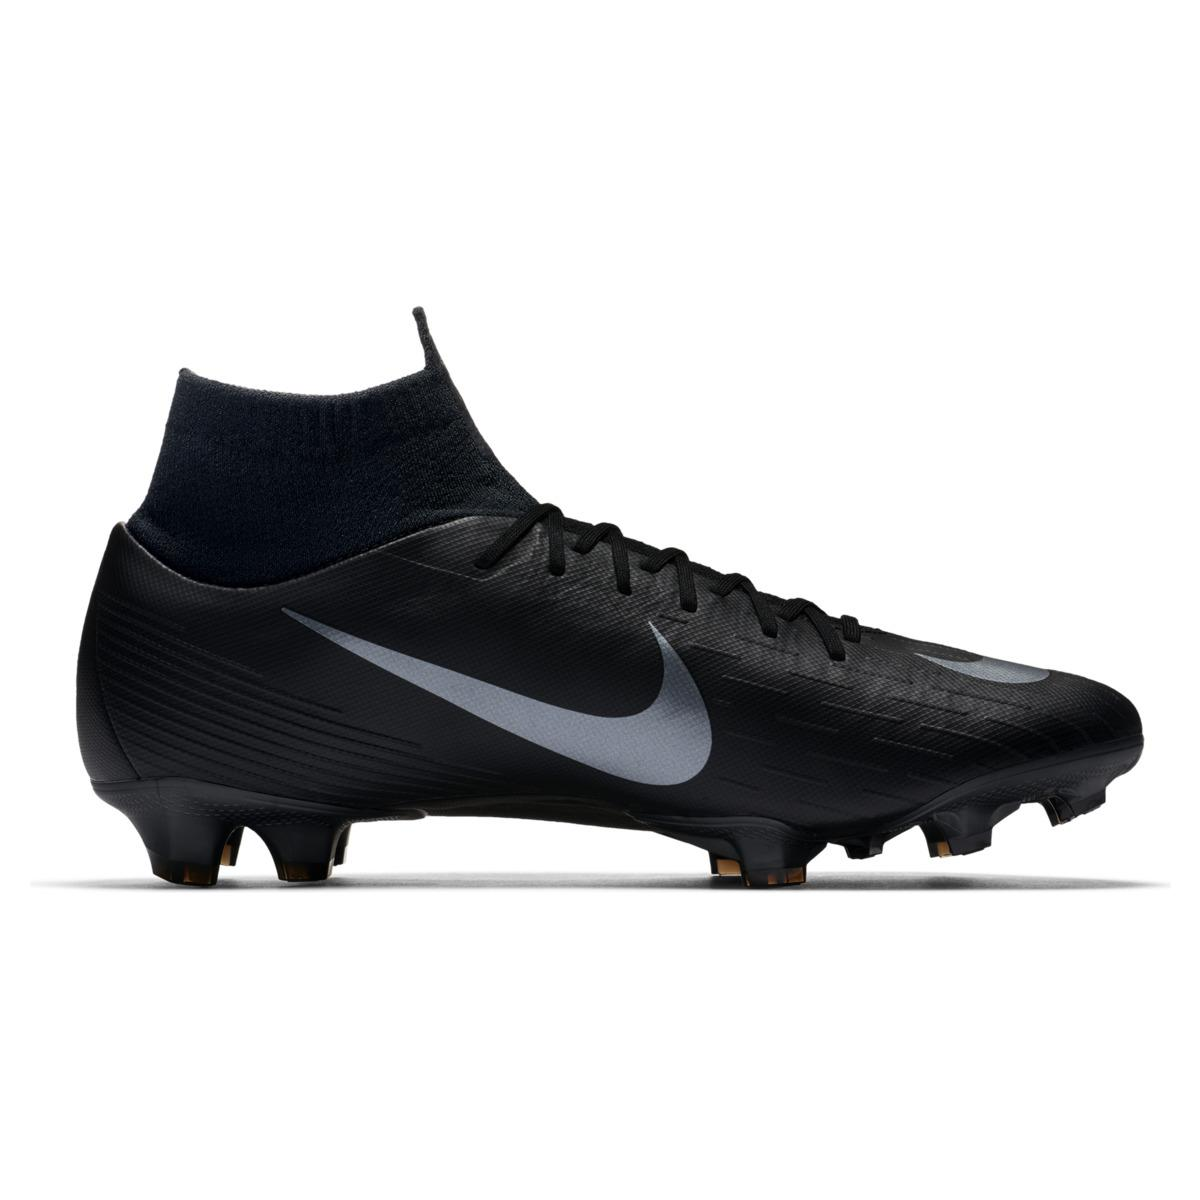 sports shoes b3024 281d9 Nike Superfly 6 Pro Fg Football Boots in Black for Men - Lyst